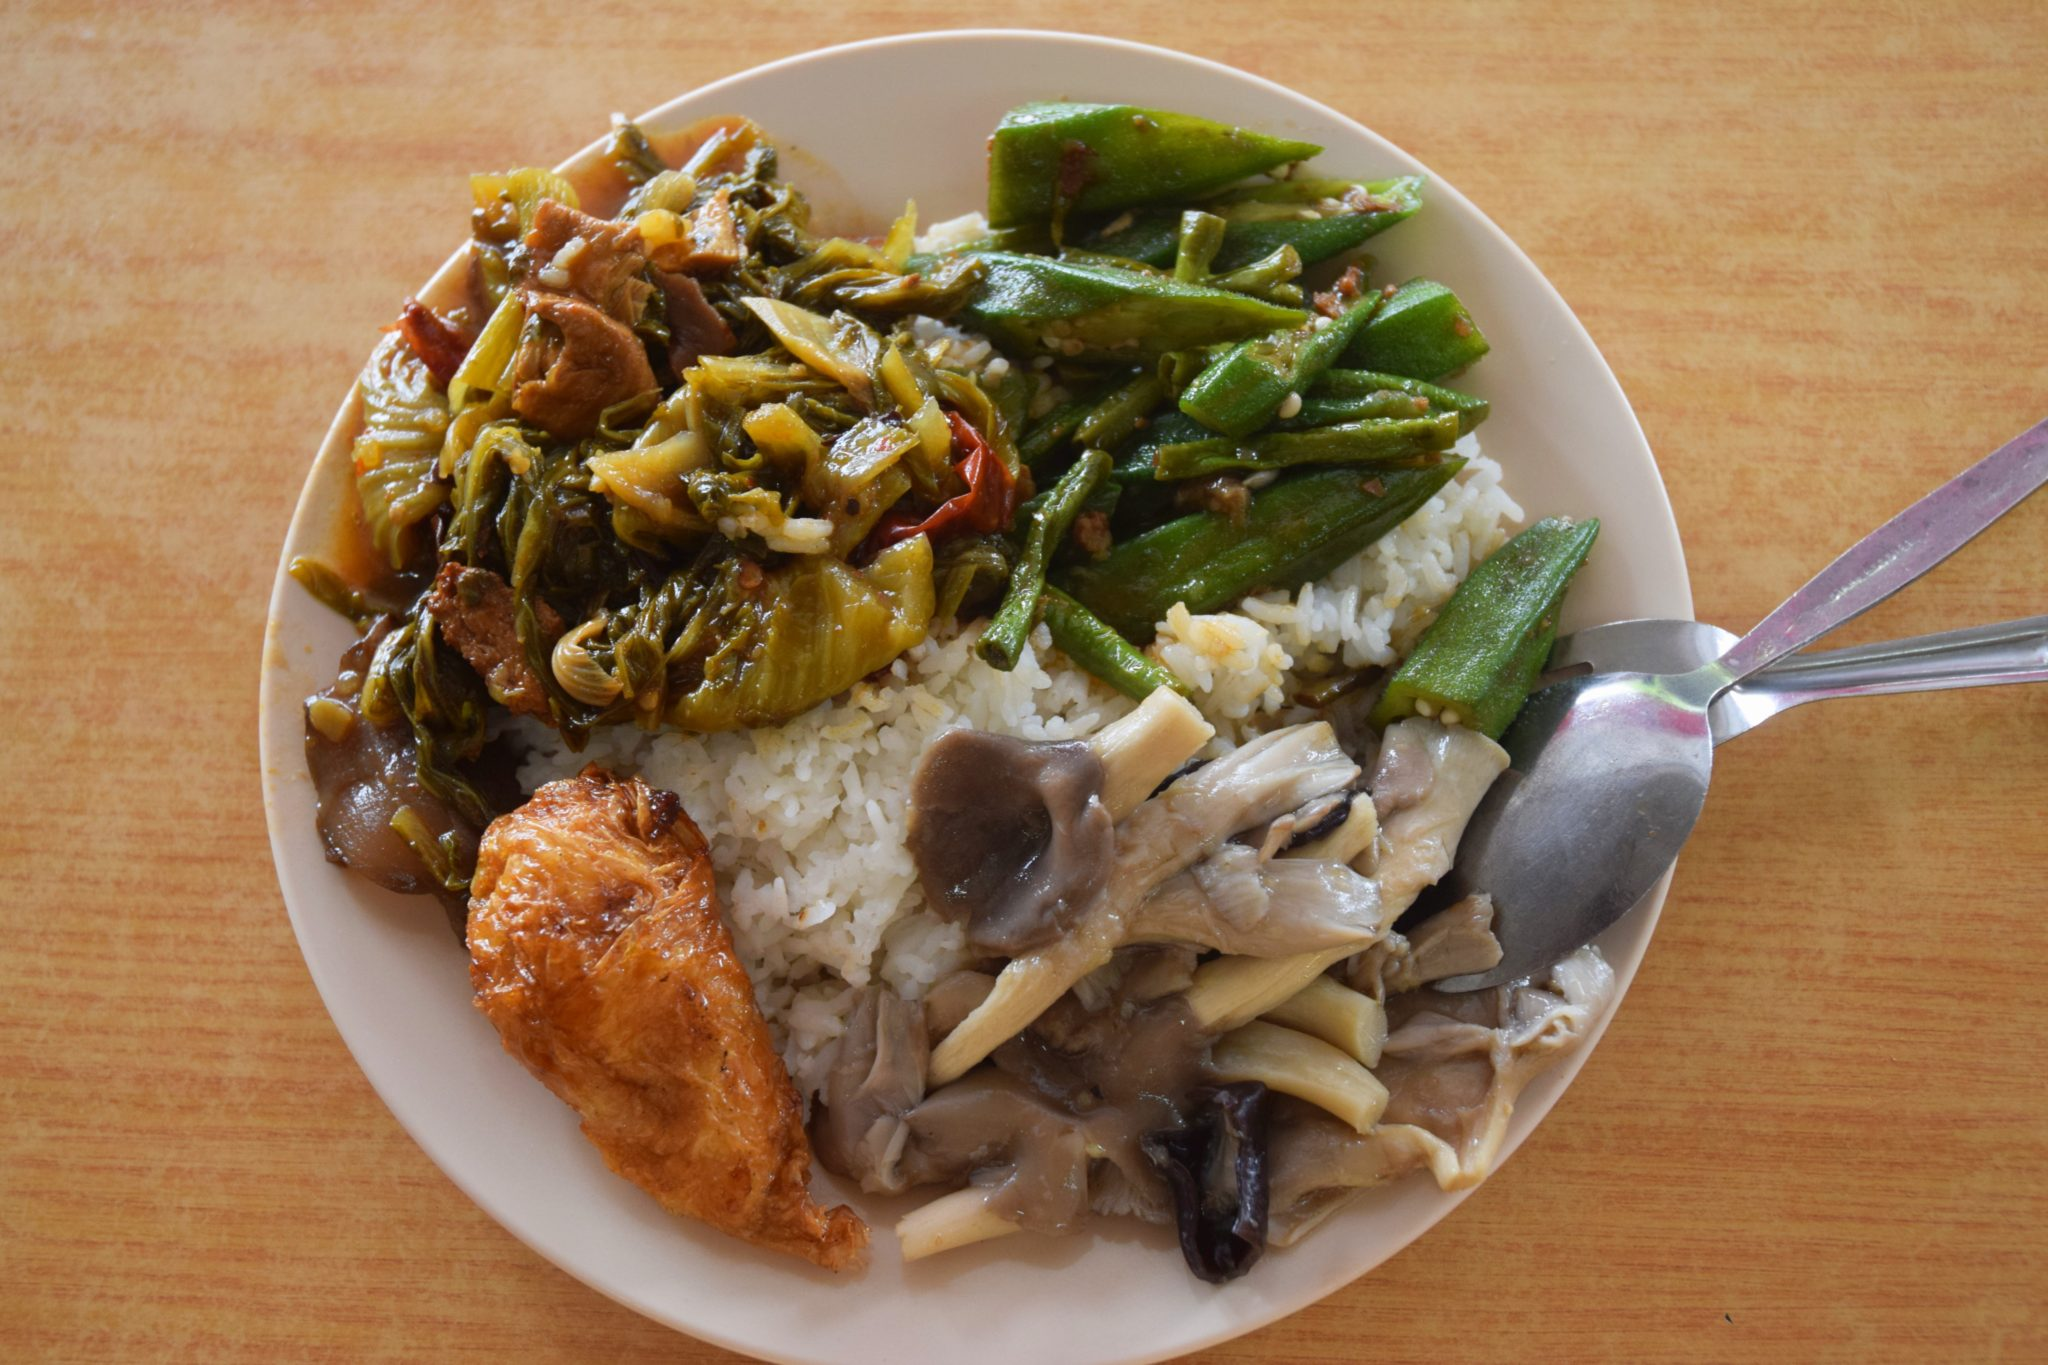 Cafe Scouting: Welcome Vegetarian Cafe